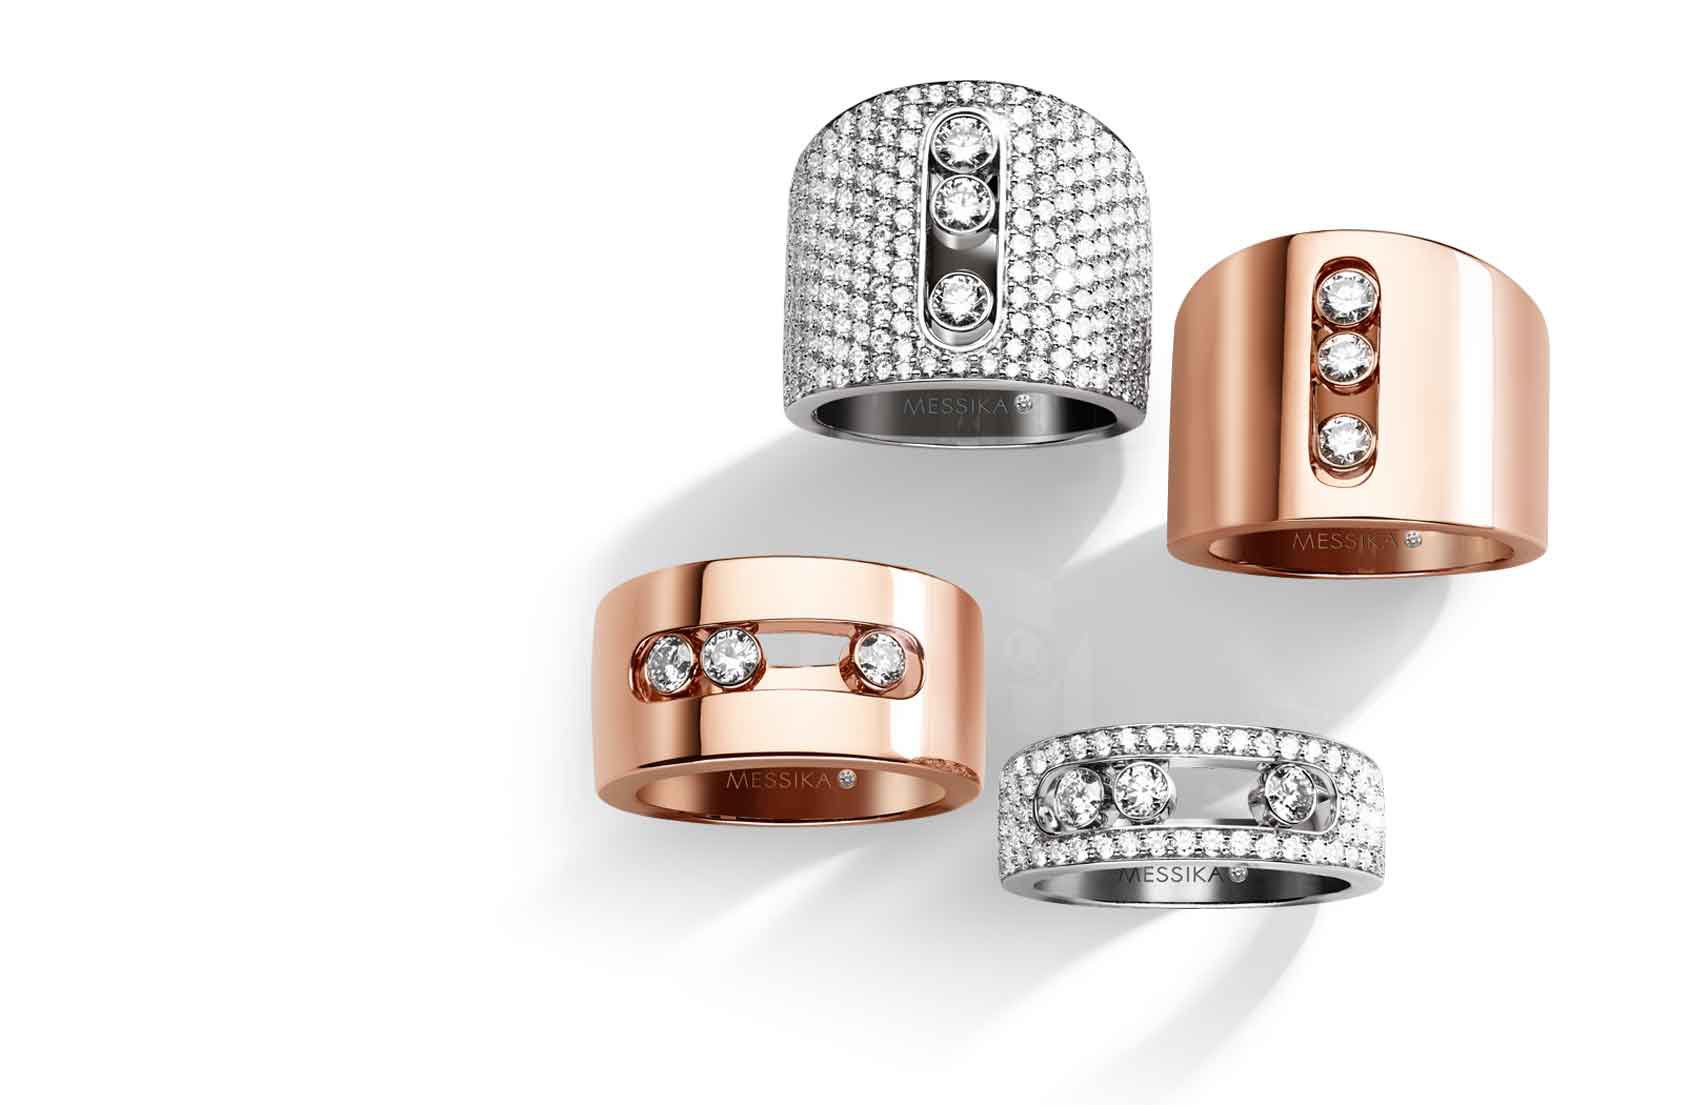 messika-jewelry-move-jewelry-collection